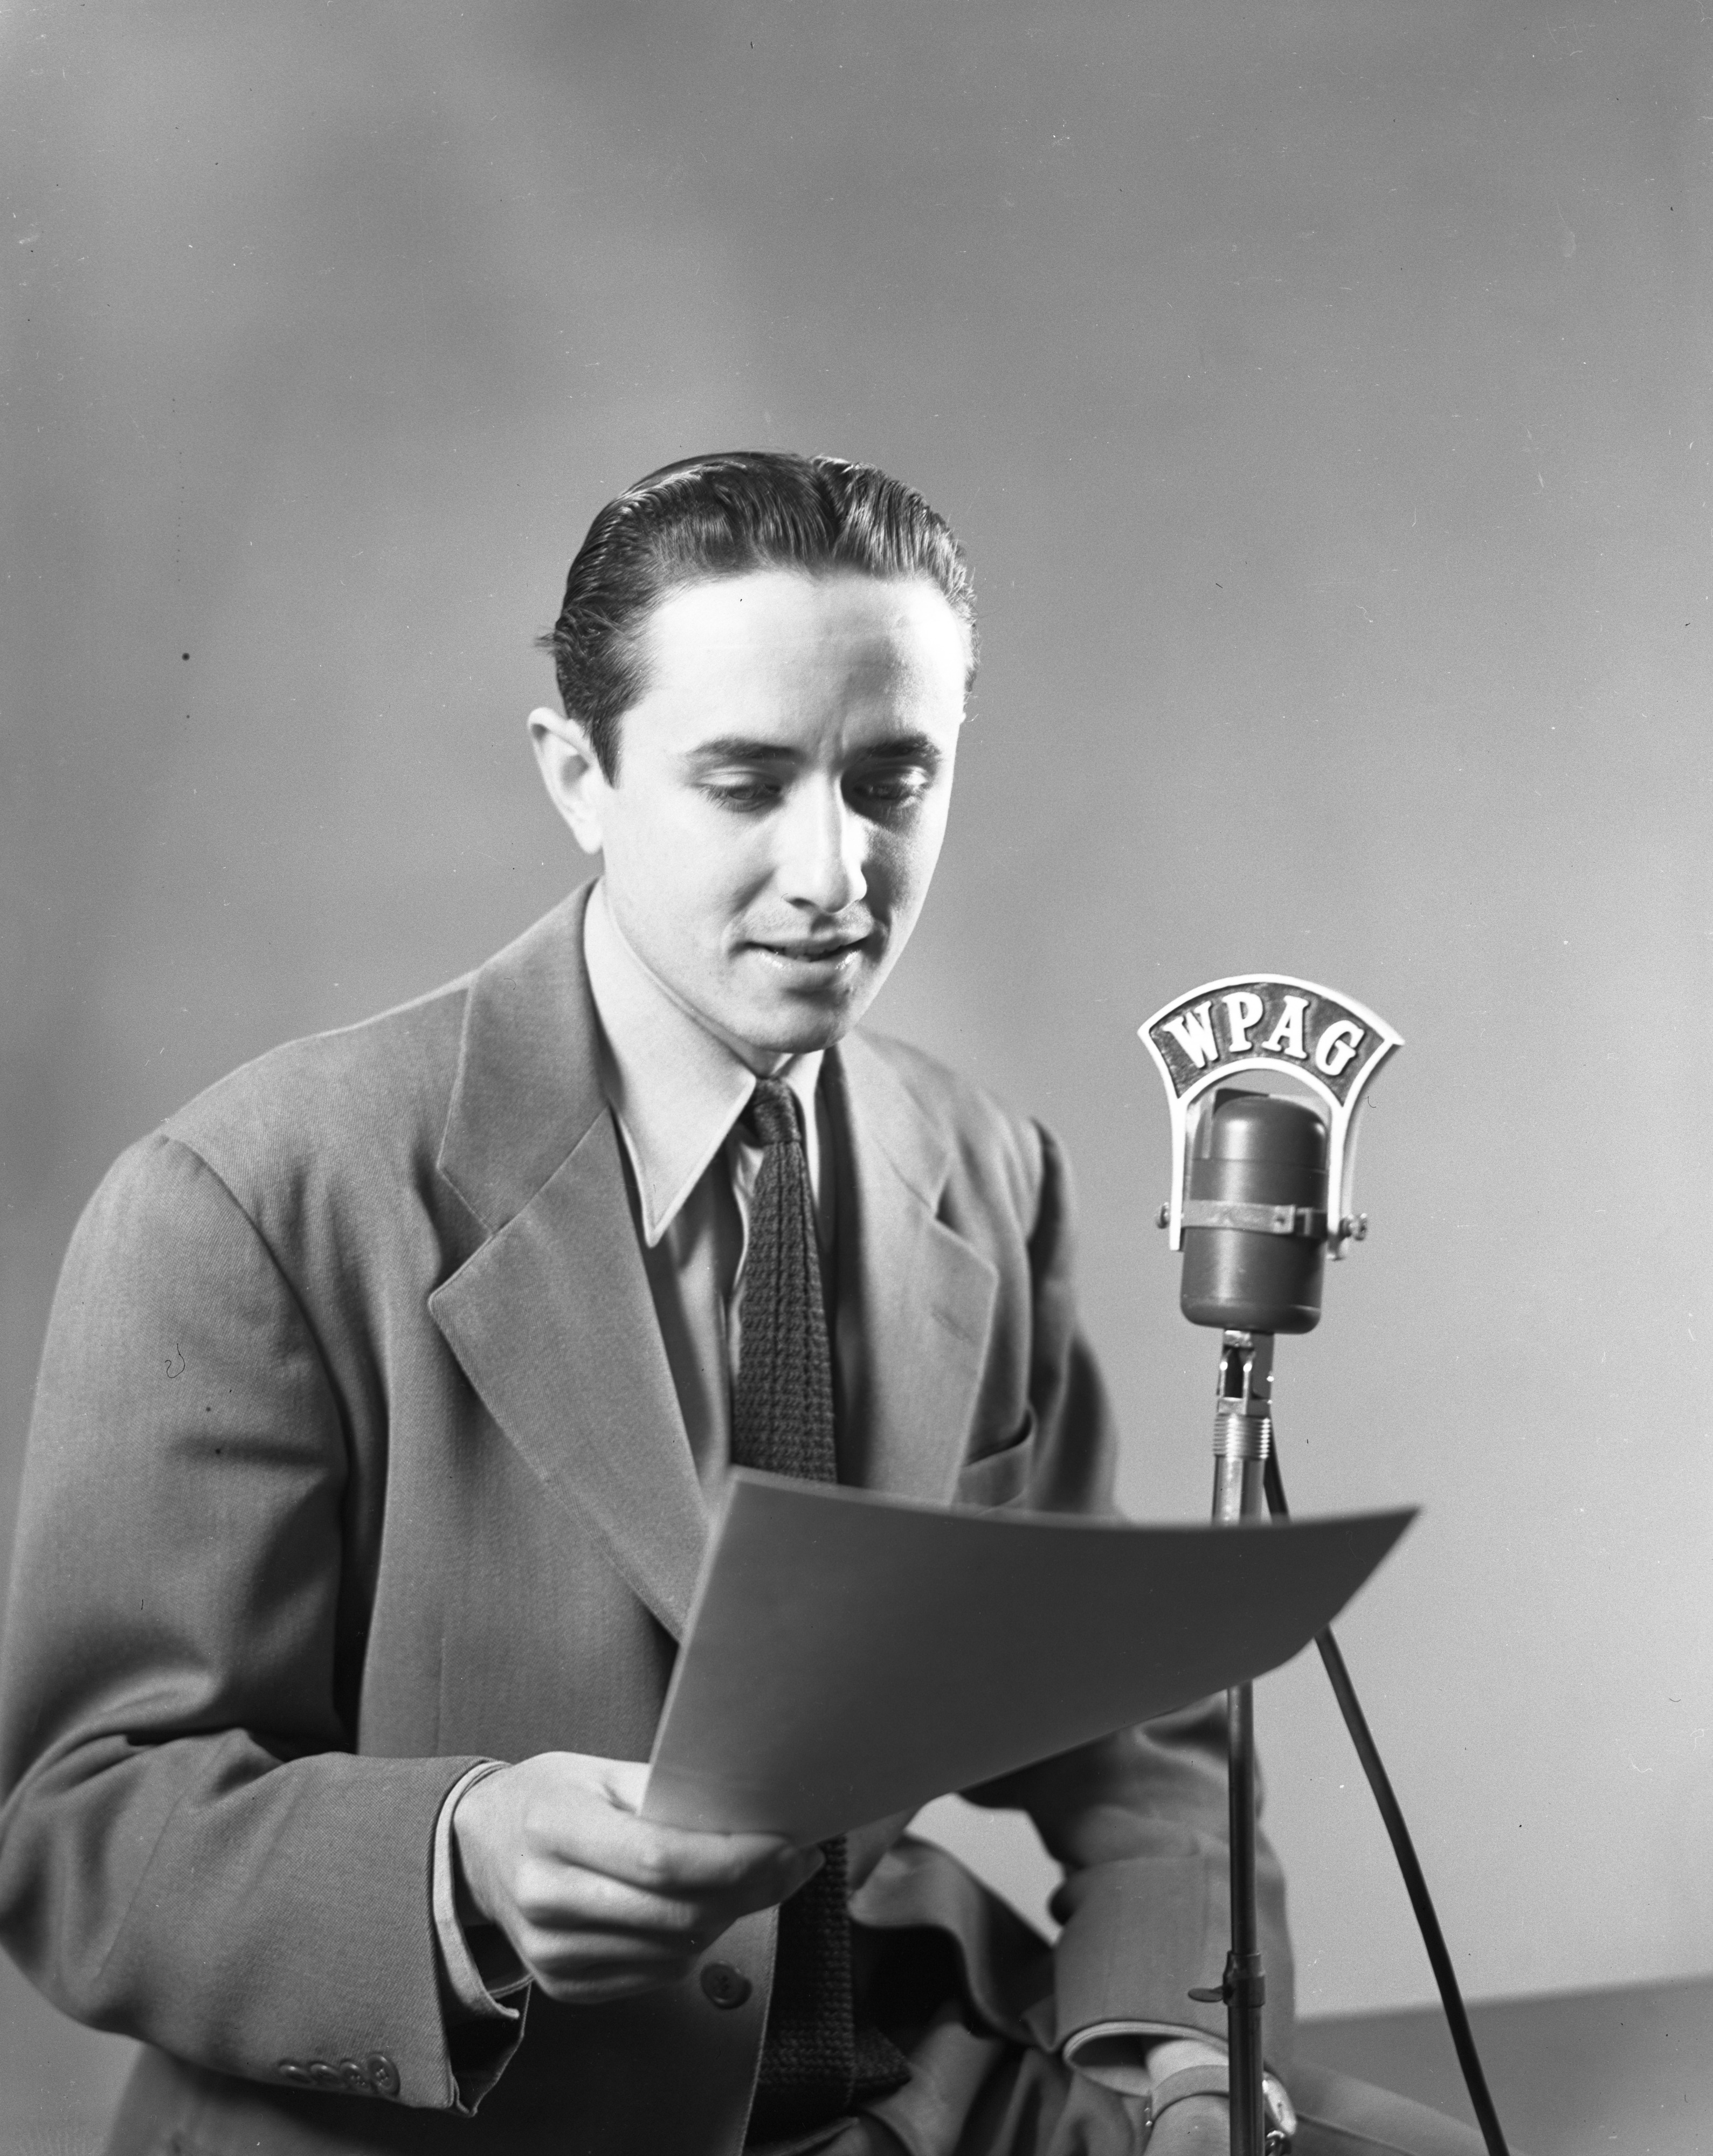 Pat Quinn, WPAG announcer, December 1947 image